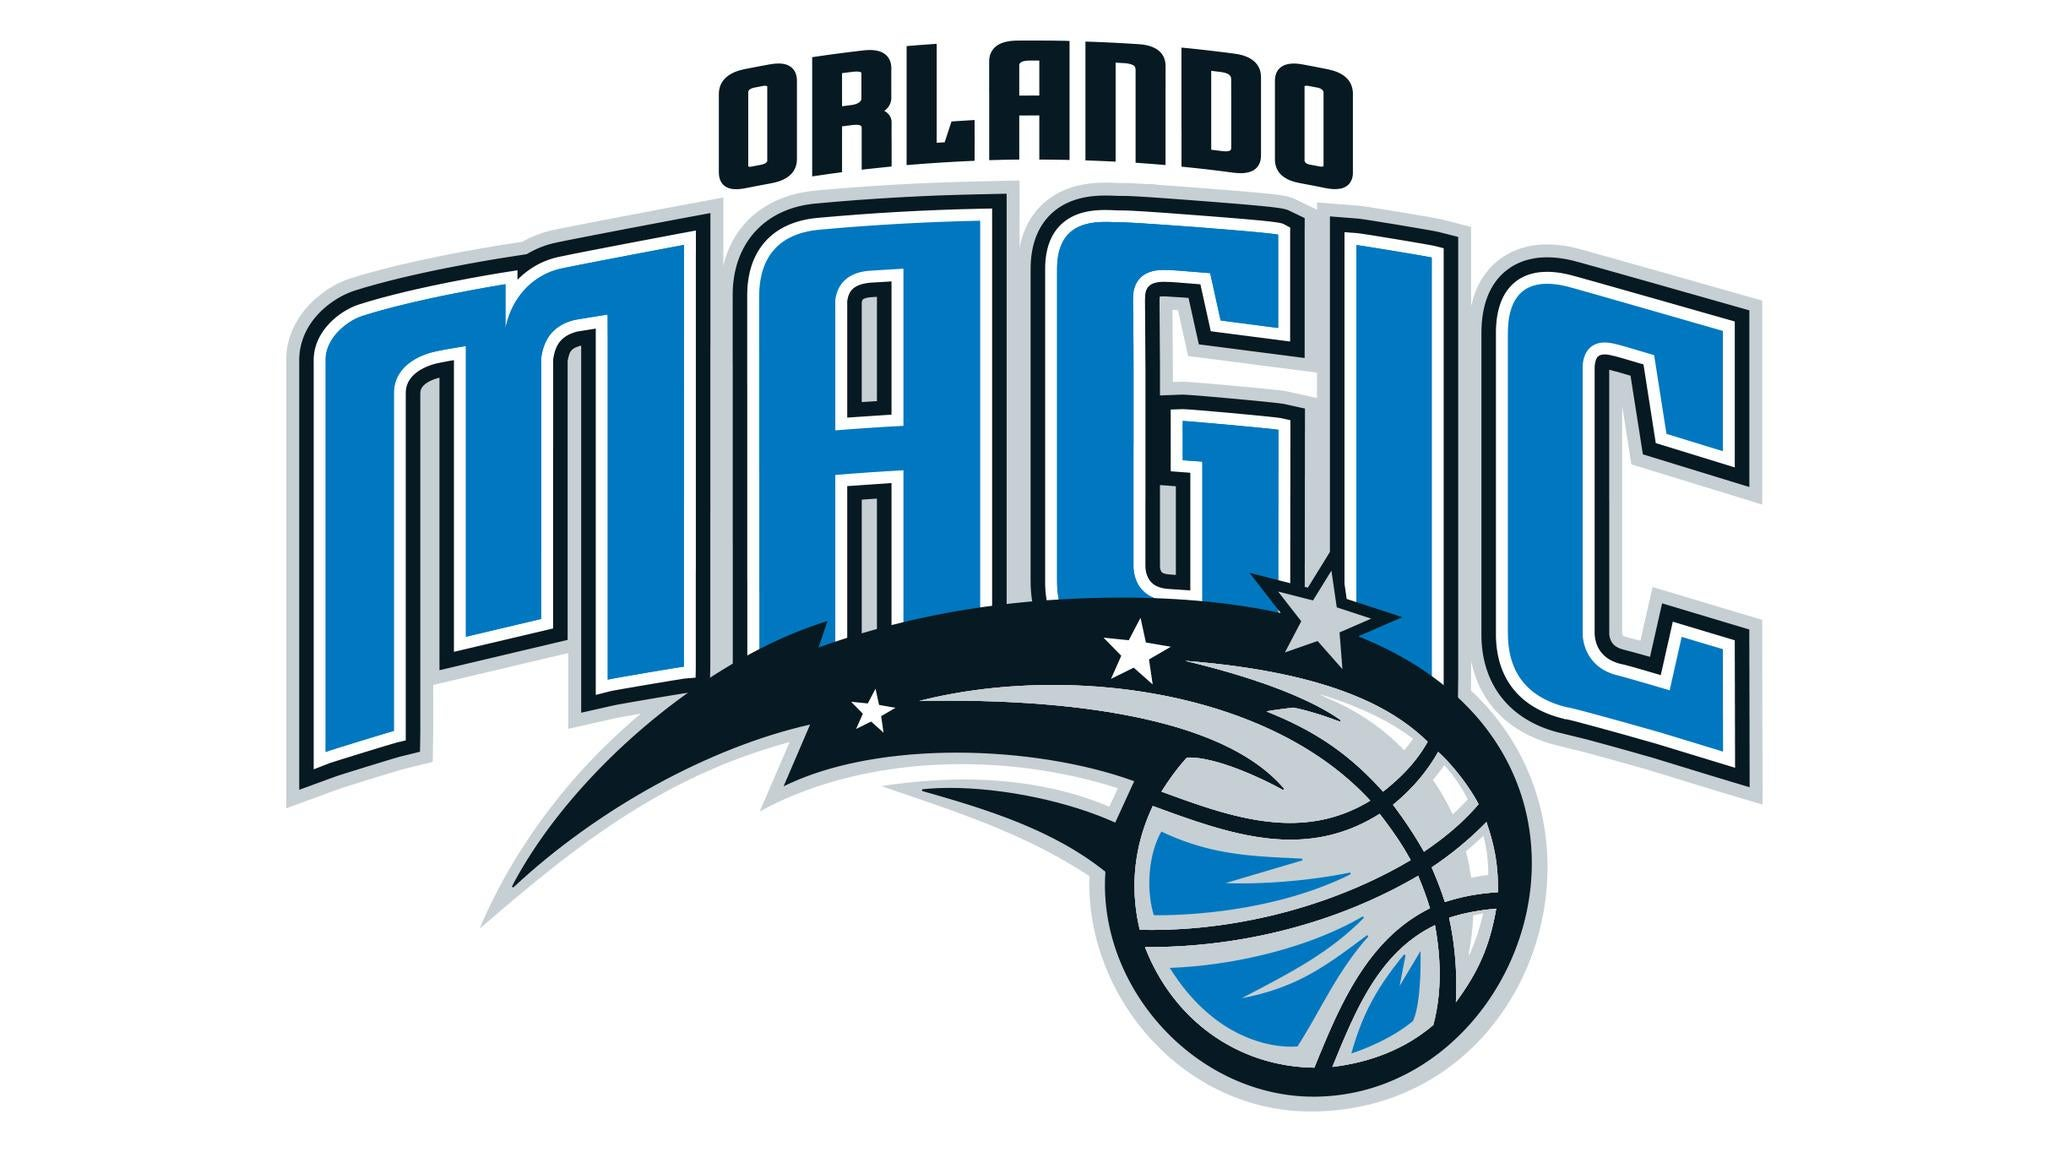 Orlando Magic vs. San Antonio Spurs at Amway Center